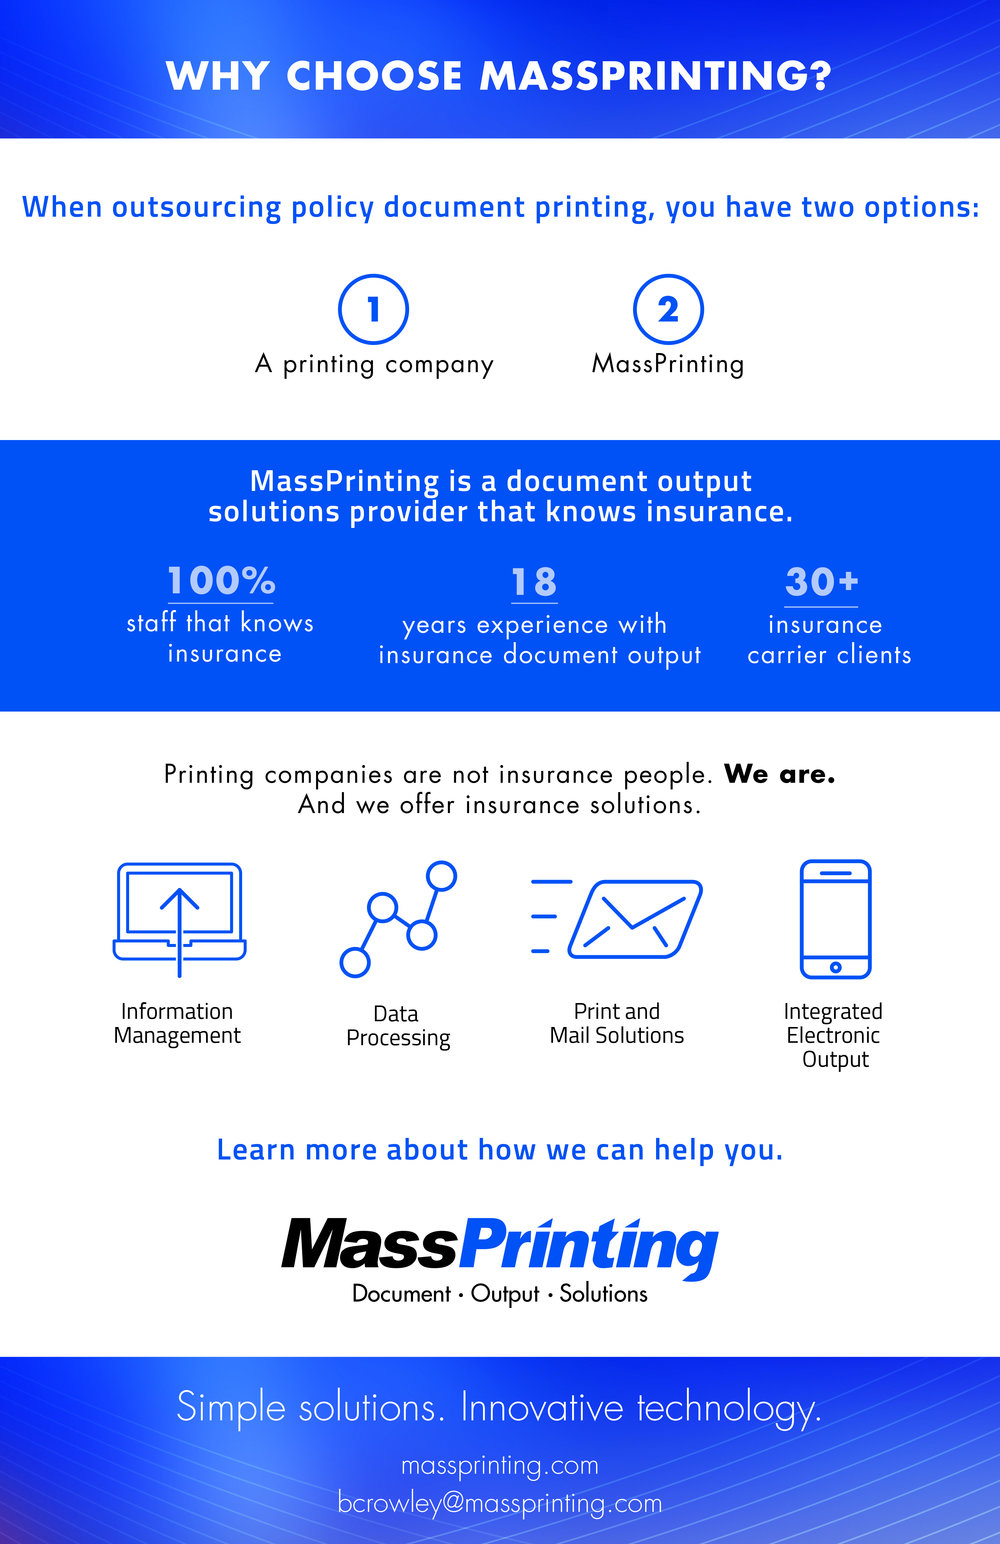 MassPrinting_Why_Choose_Infographic_final.jpg